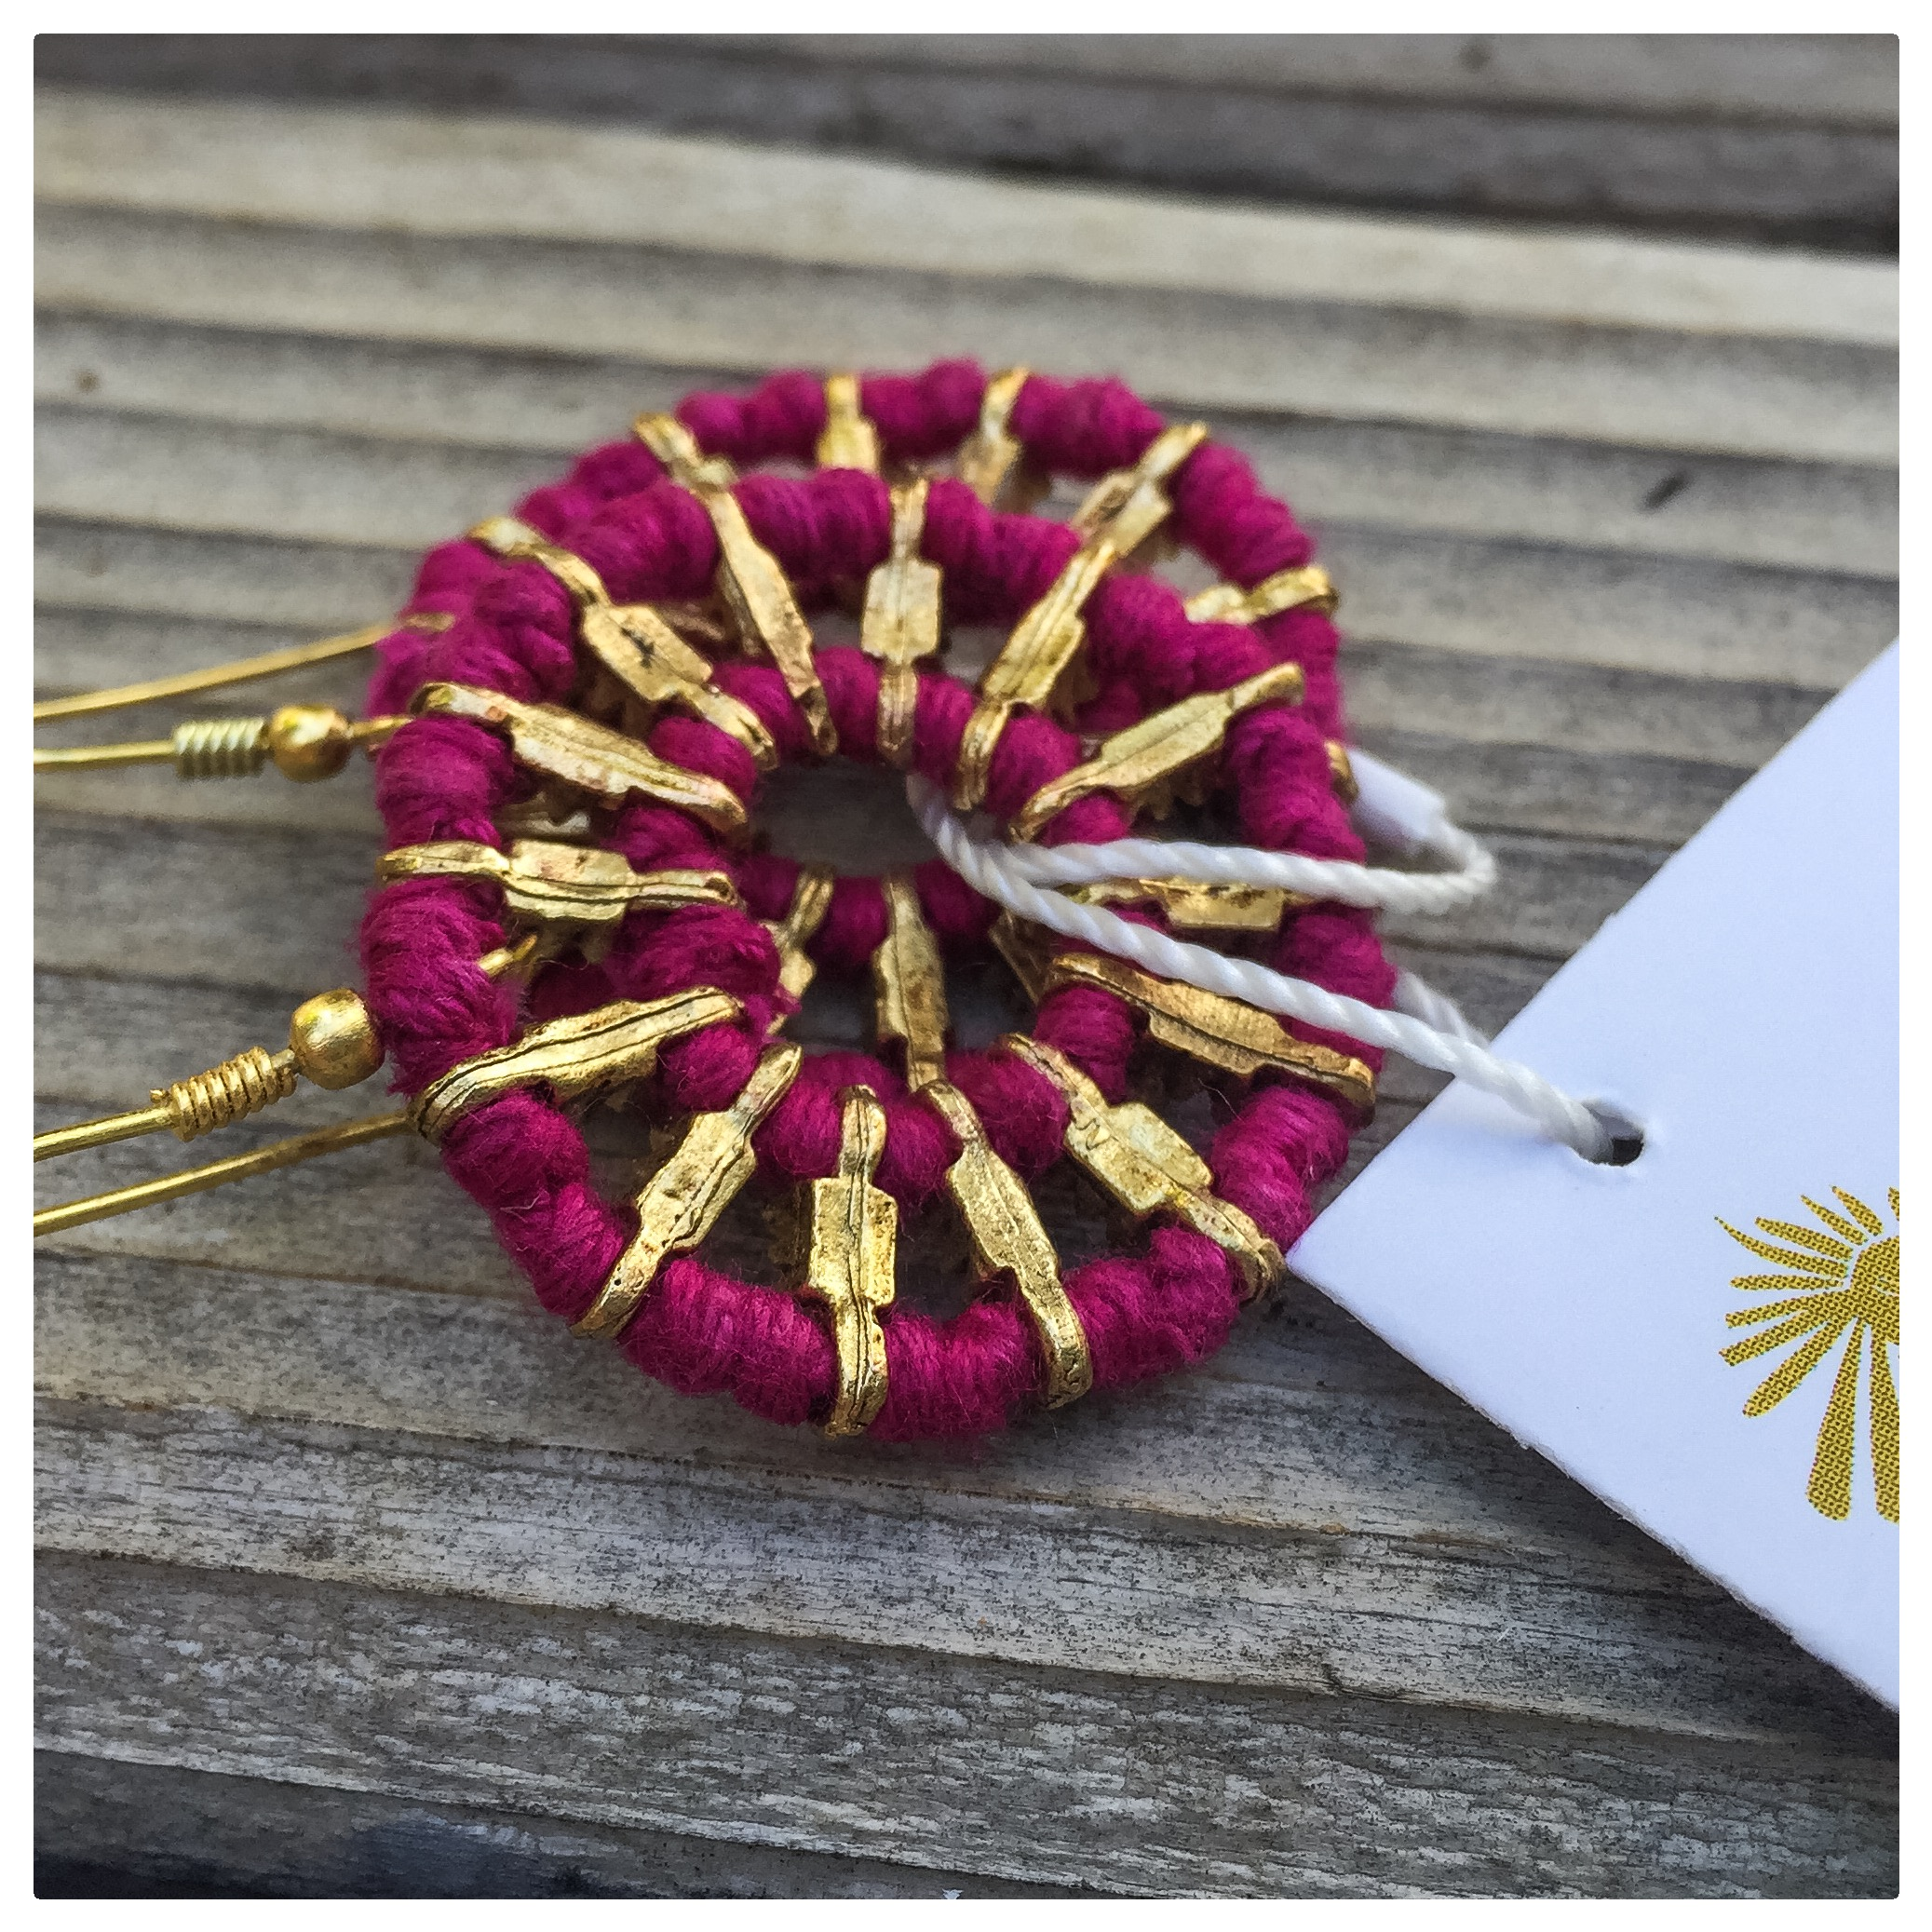 Last but not least,  Noonday Collection ! Made with love in India, these magenta compass earrings are as beautiful as they are purposeful. We can't enough of Noonday and their mission of using fashion to create meaningful employment opportunities for people all over the world.